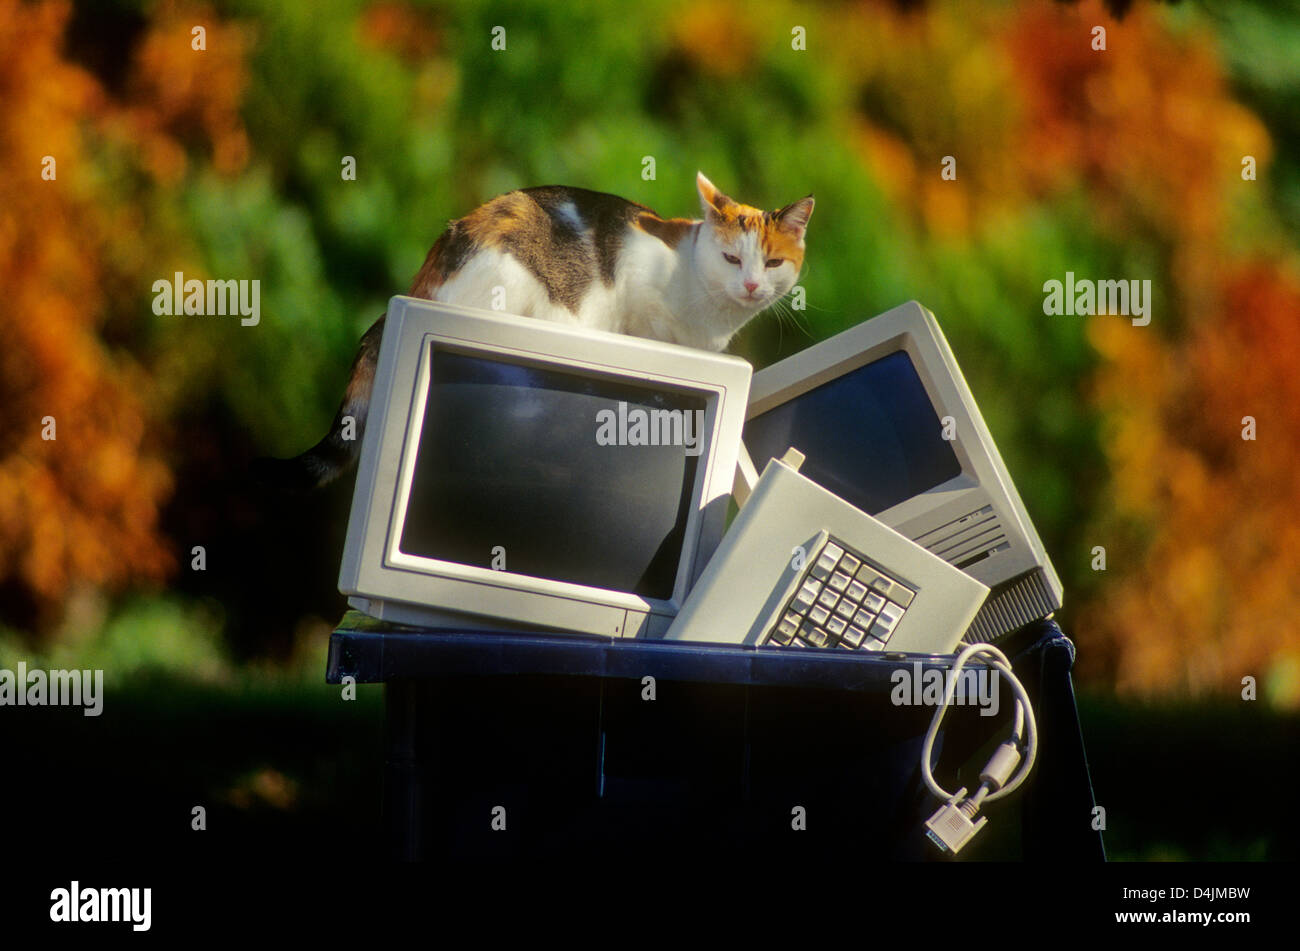 Old computer screen thrown in the trash can bin for recycling. - Stock Image